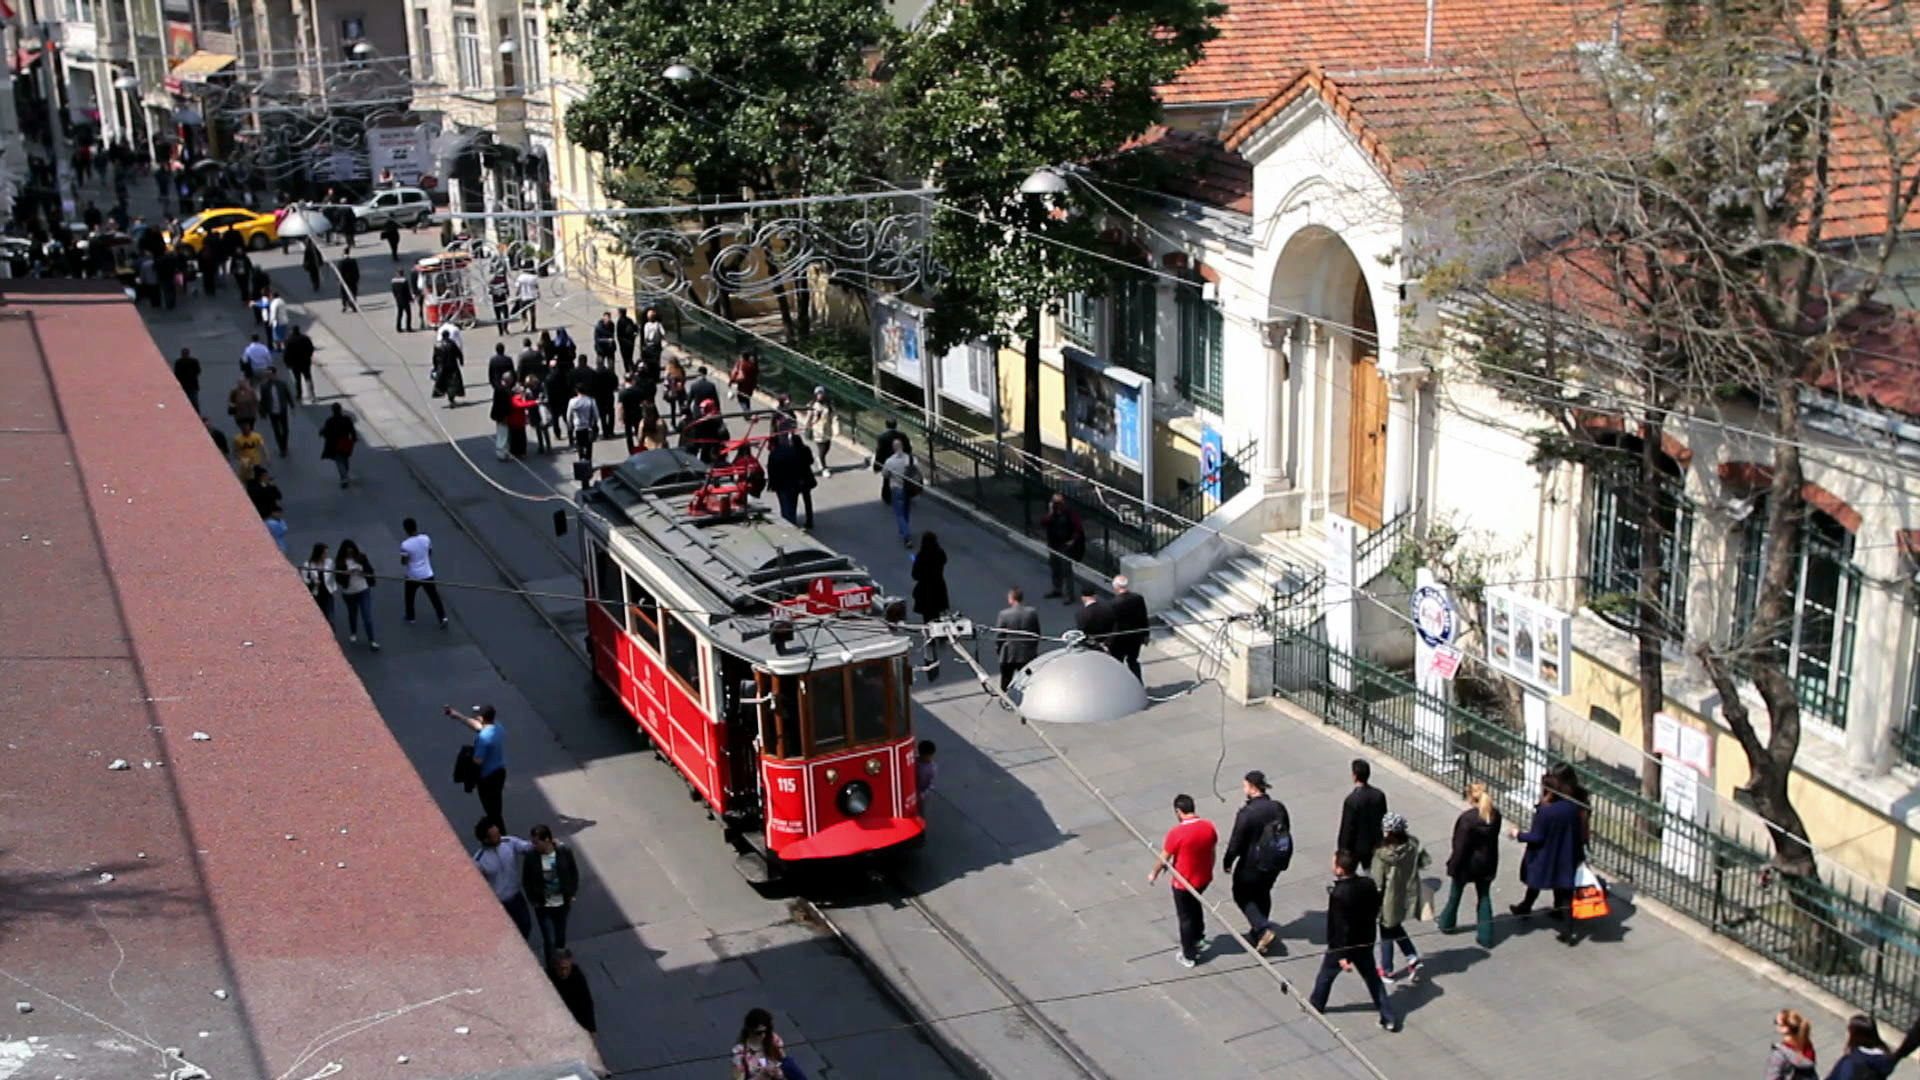 EDITUDE PICTURES About a boycott at Istanbul Film Festival 2015